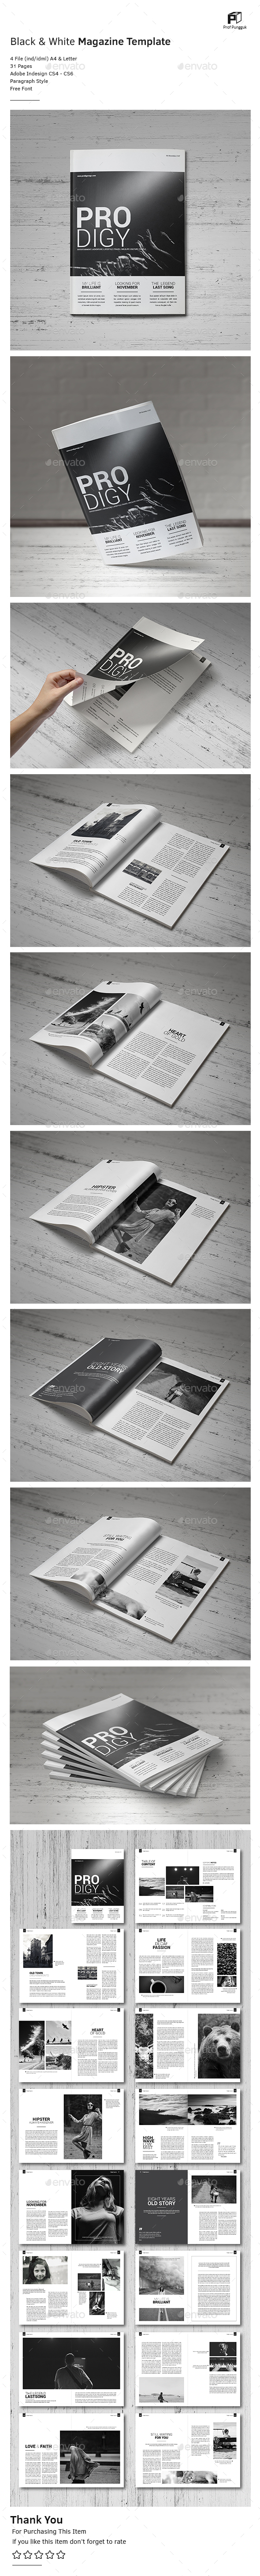 Black & White Magazine Vol.2 - Magazines Print Templates